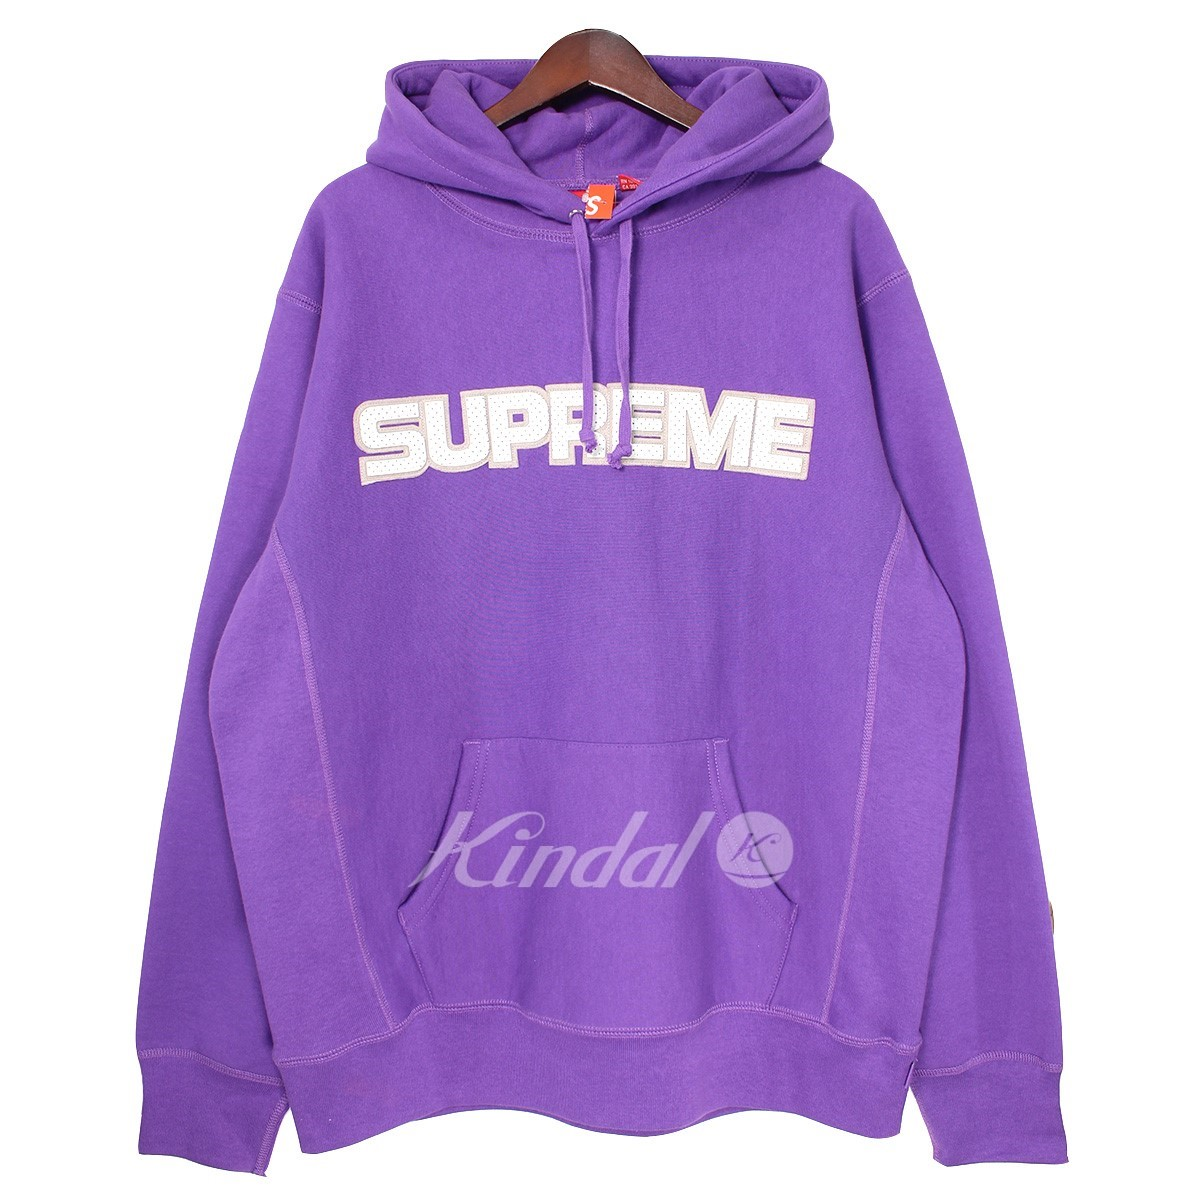 【中古】SUPREME 18AW Perforated Leather Hooded Sweatshirt ロゴパーカー 【送料無料】 【001462】 【KIND1550】